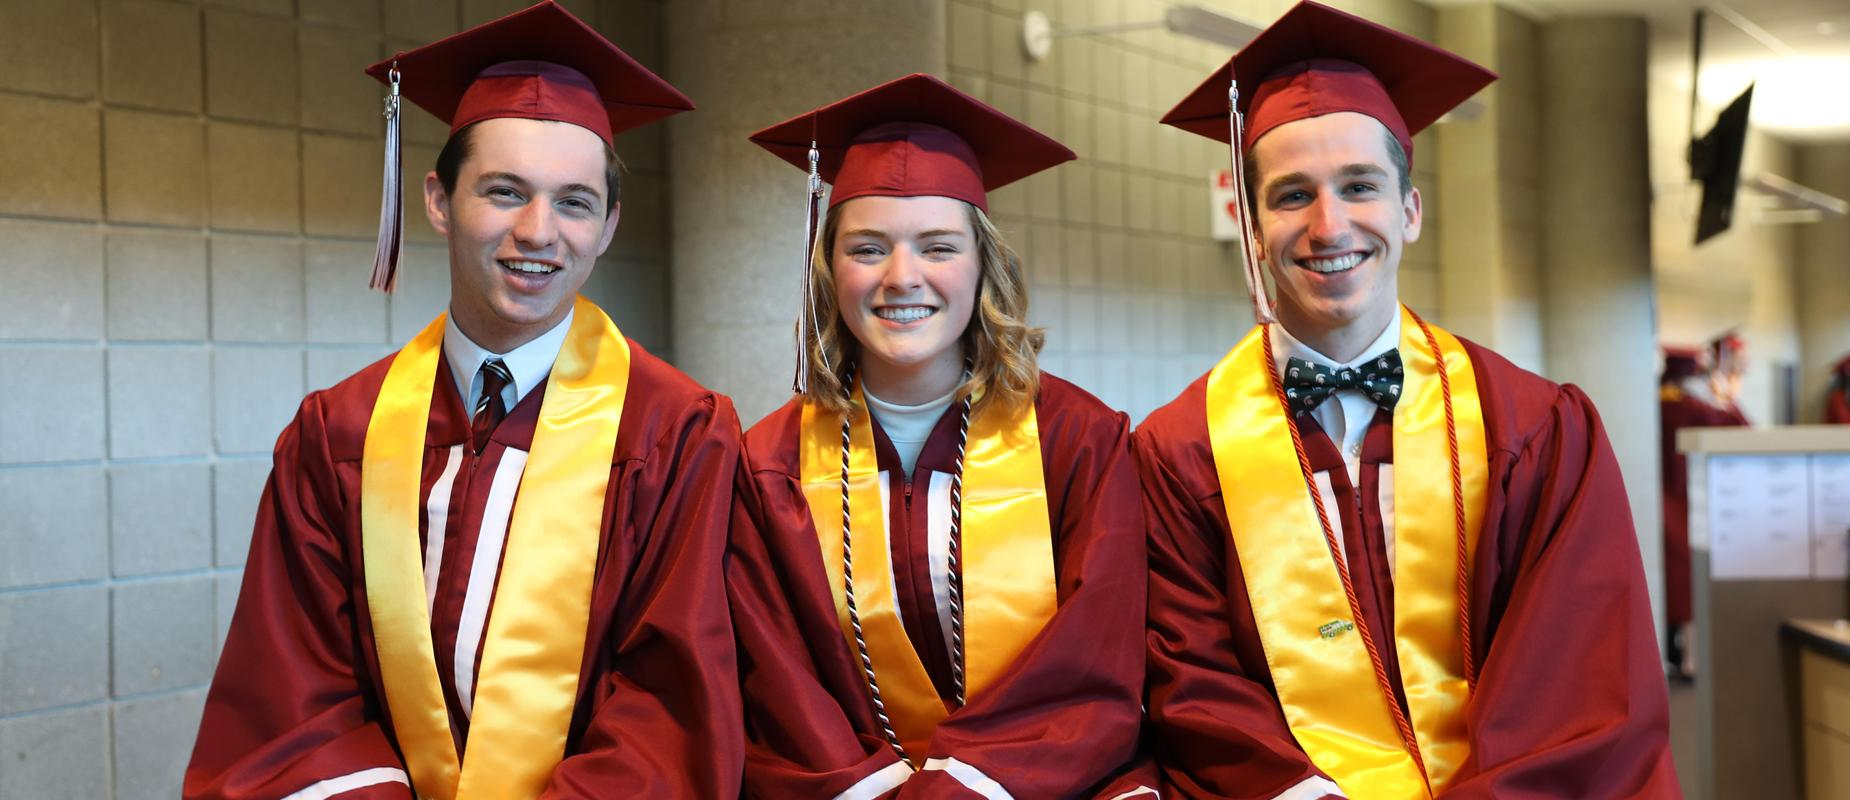 3 grads in maroon robes and caps with yellow sashes